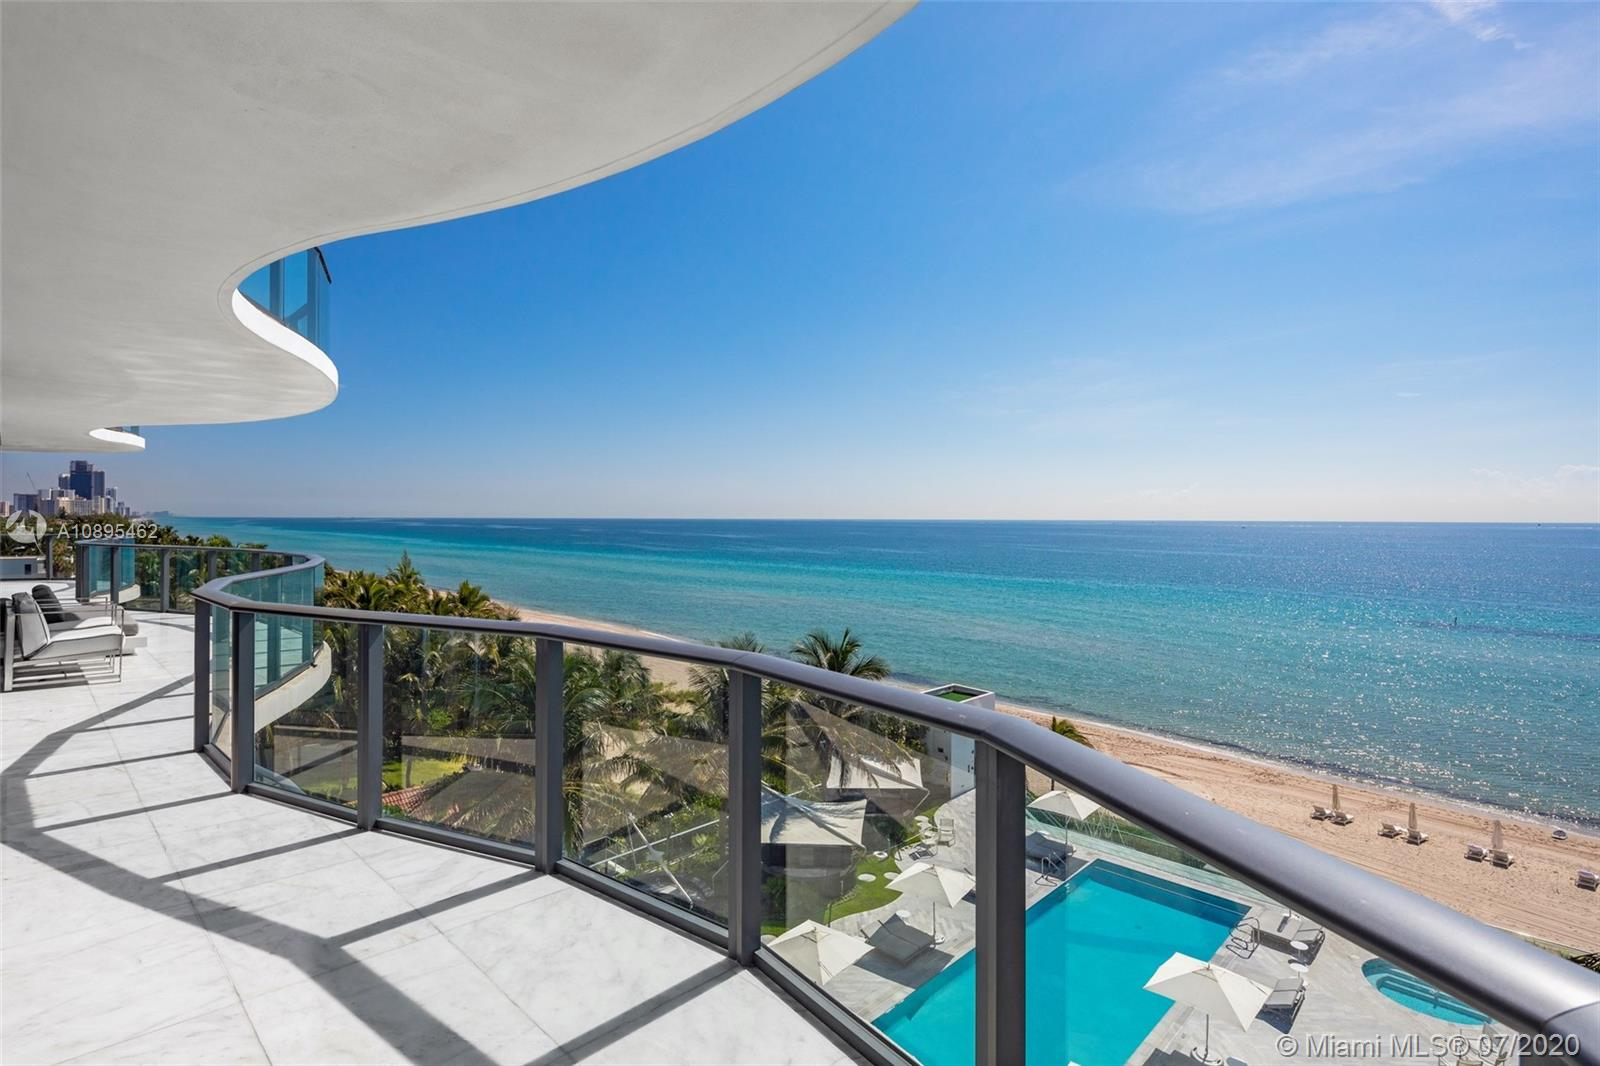 Regalia On The Ocean No. 6, featuring 360 degree unobstructed ocean views, 5,515 Sq Ft of luxury living space. 4 bedrooms, 5.5 bathrooms, 2,100 Sq Ft wrap around balcony. 10 ft ceilings, floor to ceiling windows, impeccable marble floors, fully integrated smart home, custom lighting throughout, automated shades throughout the residence. This exquisite, fully integrated smart home has an upgraded elevator landing area, wall coverings and doors to match the décor, and a glass mosaic wall in the powder room. Luxury amenities includes full service at beach/pool, private wine cellar, business center, state of the art gym/spa facilities & more!